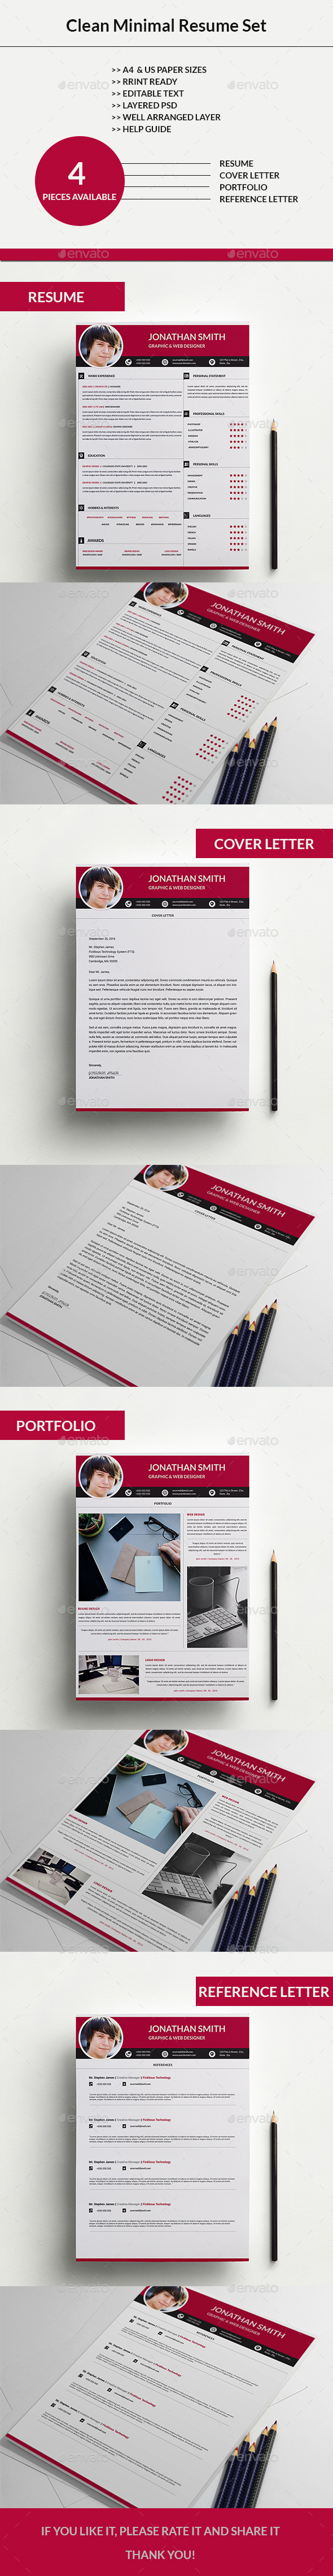 Clean Minimal Resume Set -03 - Resumes Stationery